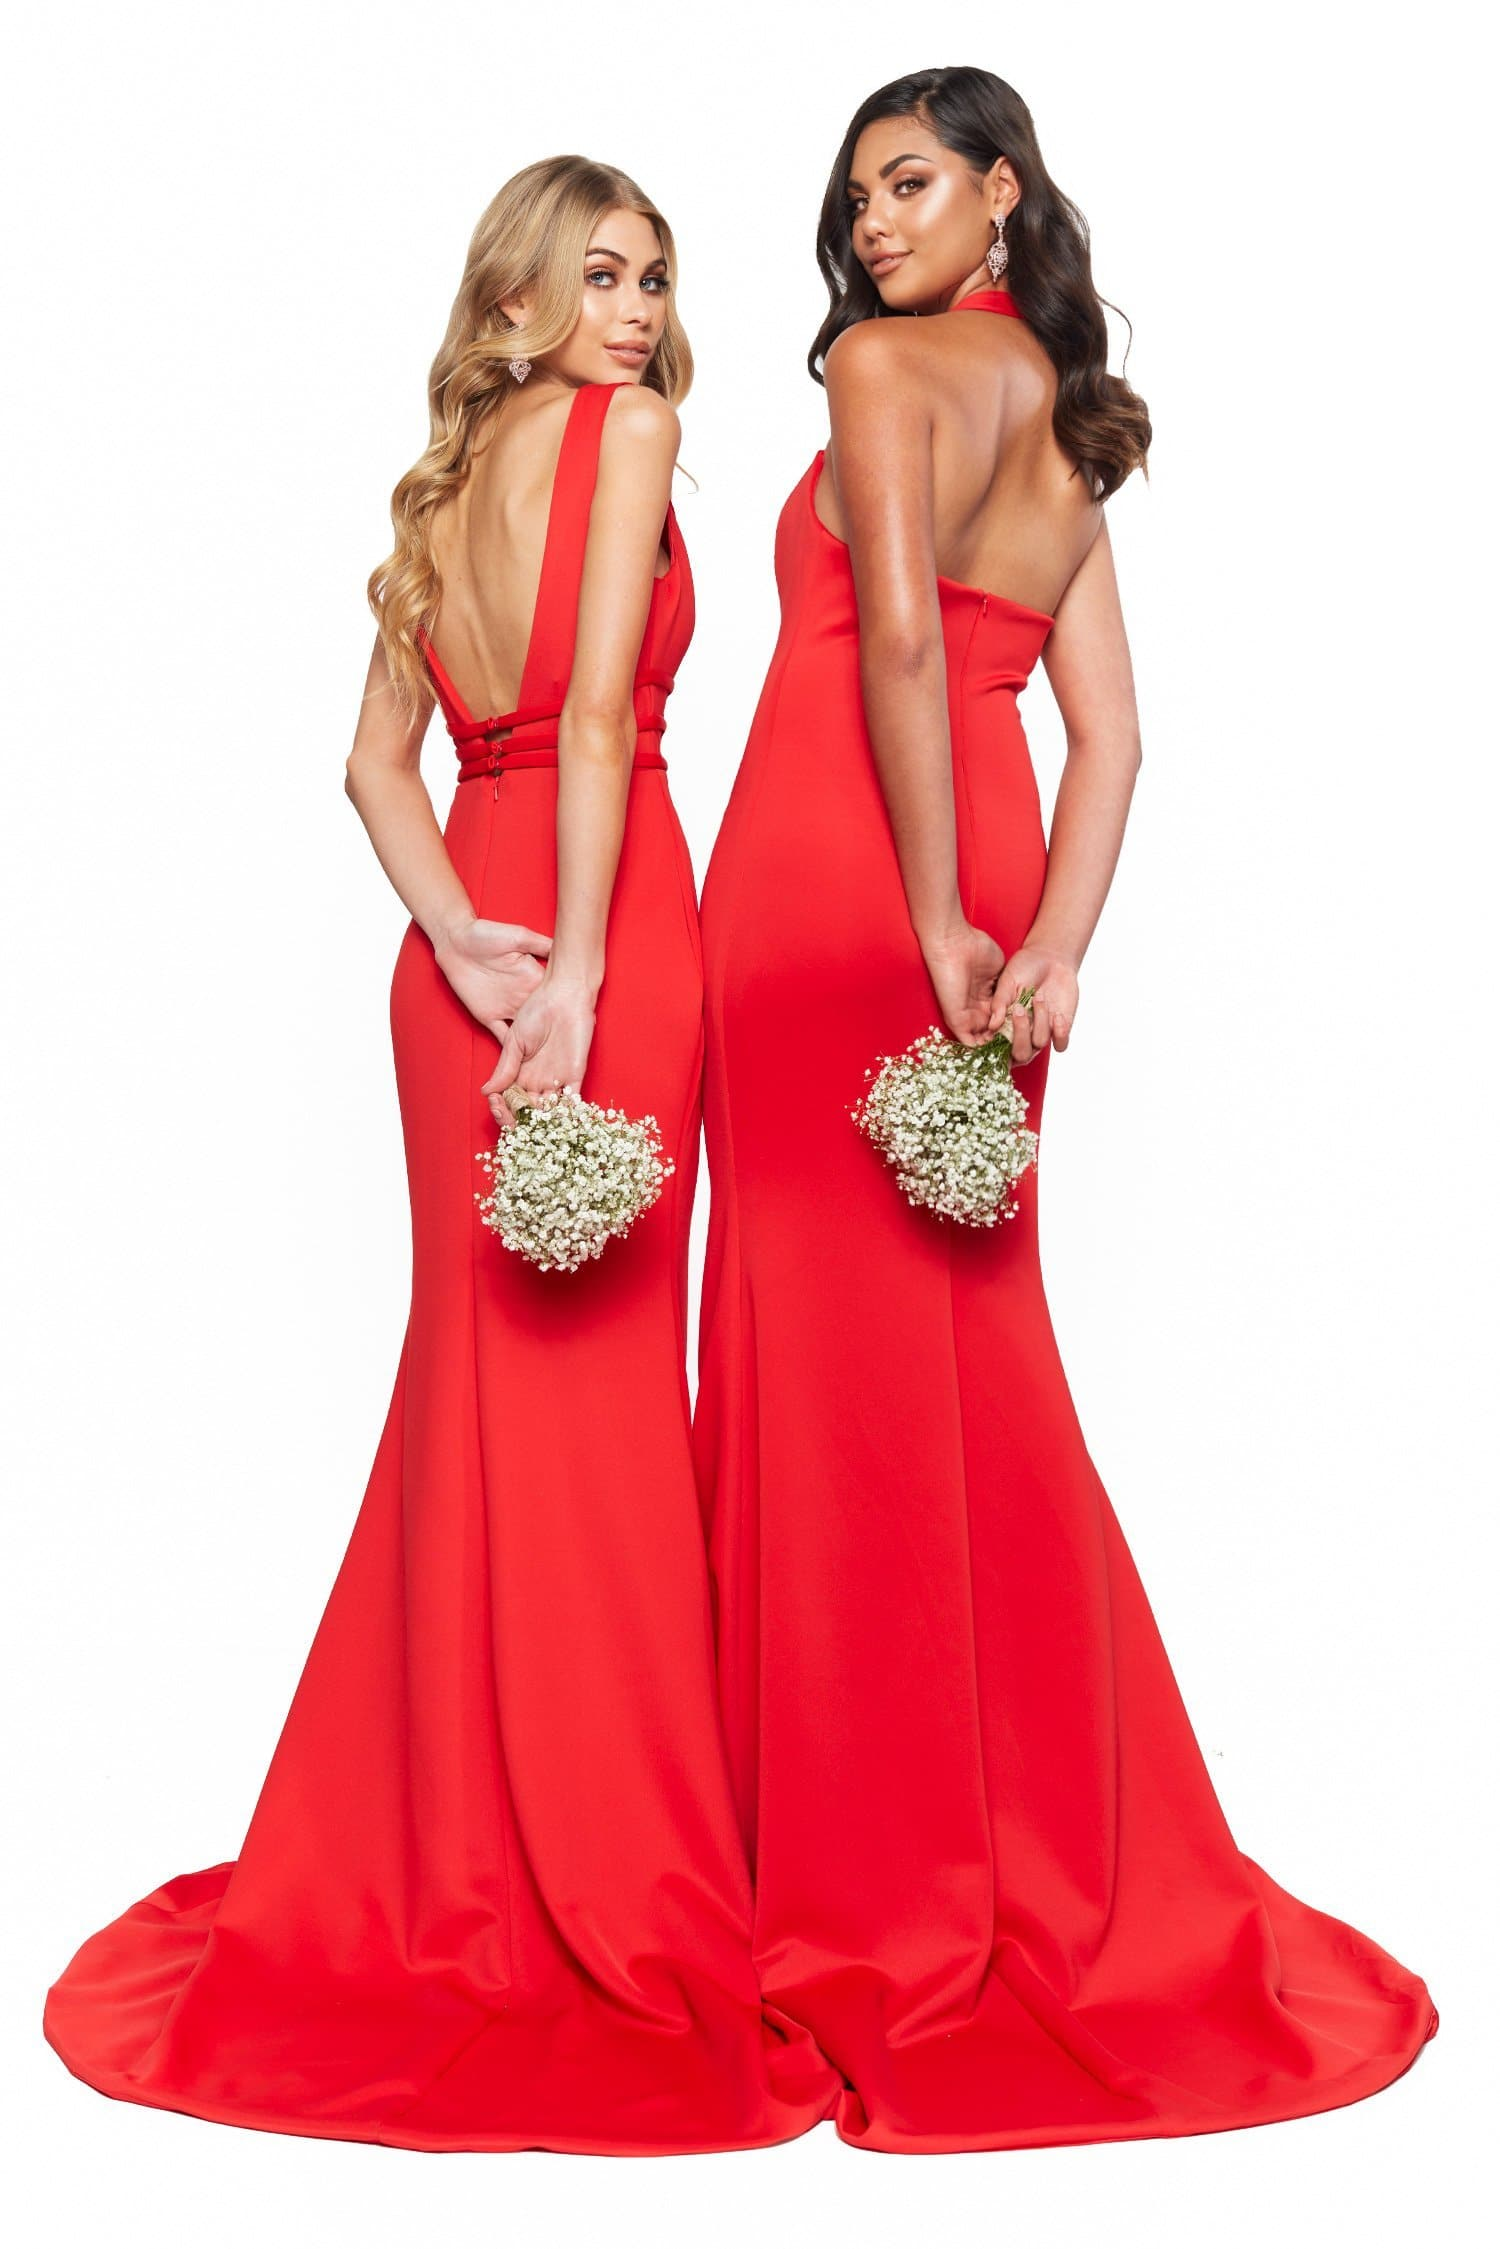 A&N Bridesmaids Ariah Halterneck Mermaid Gown - Red